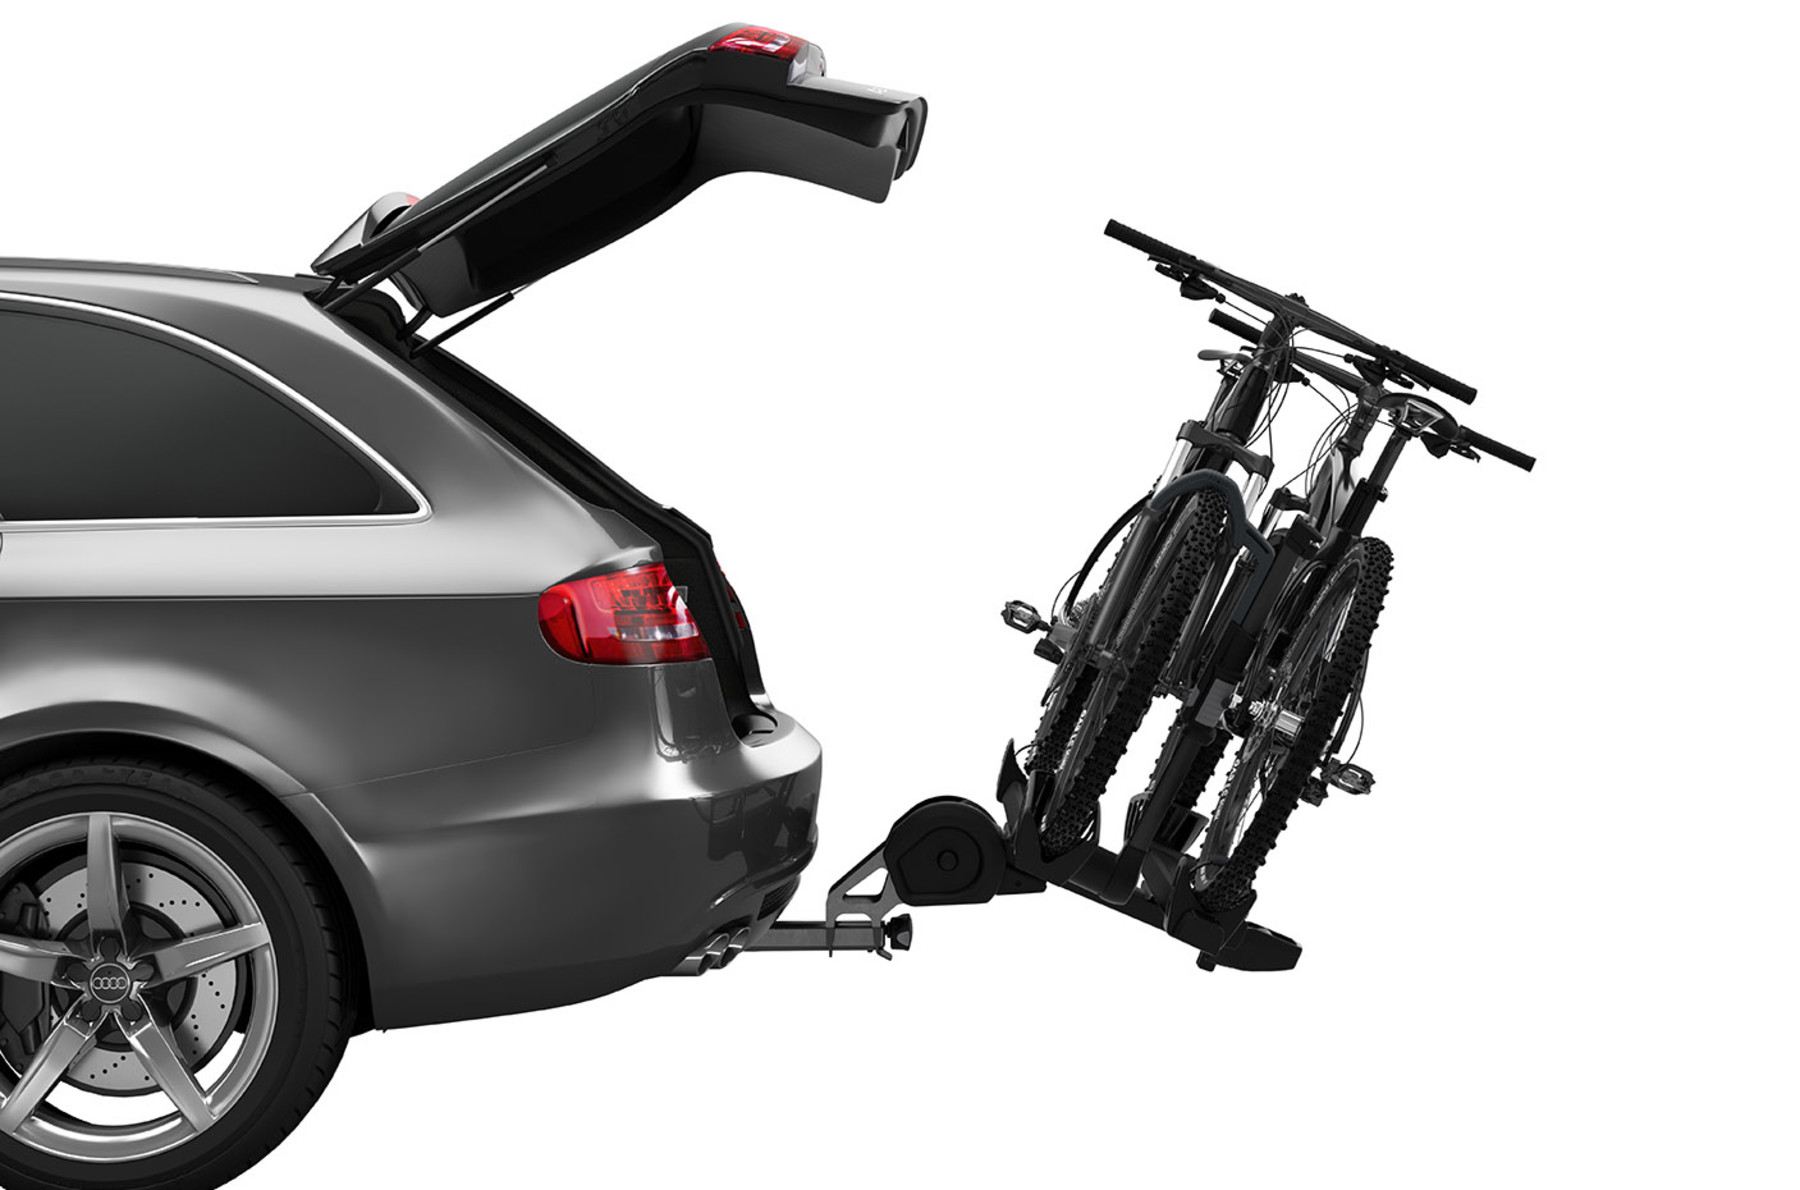 Vehicle Bicycle Rack Hitch bike rack-Thule T2 Pro XT 9035XT-On a car ...